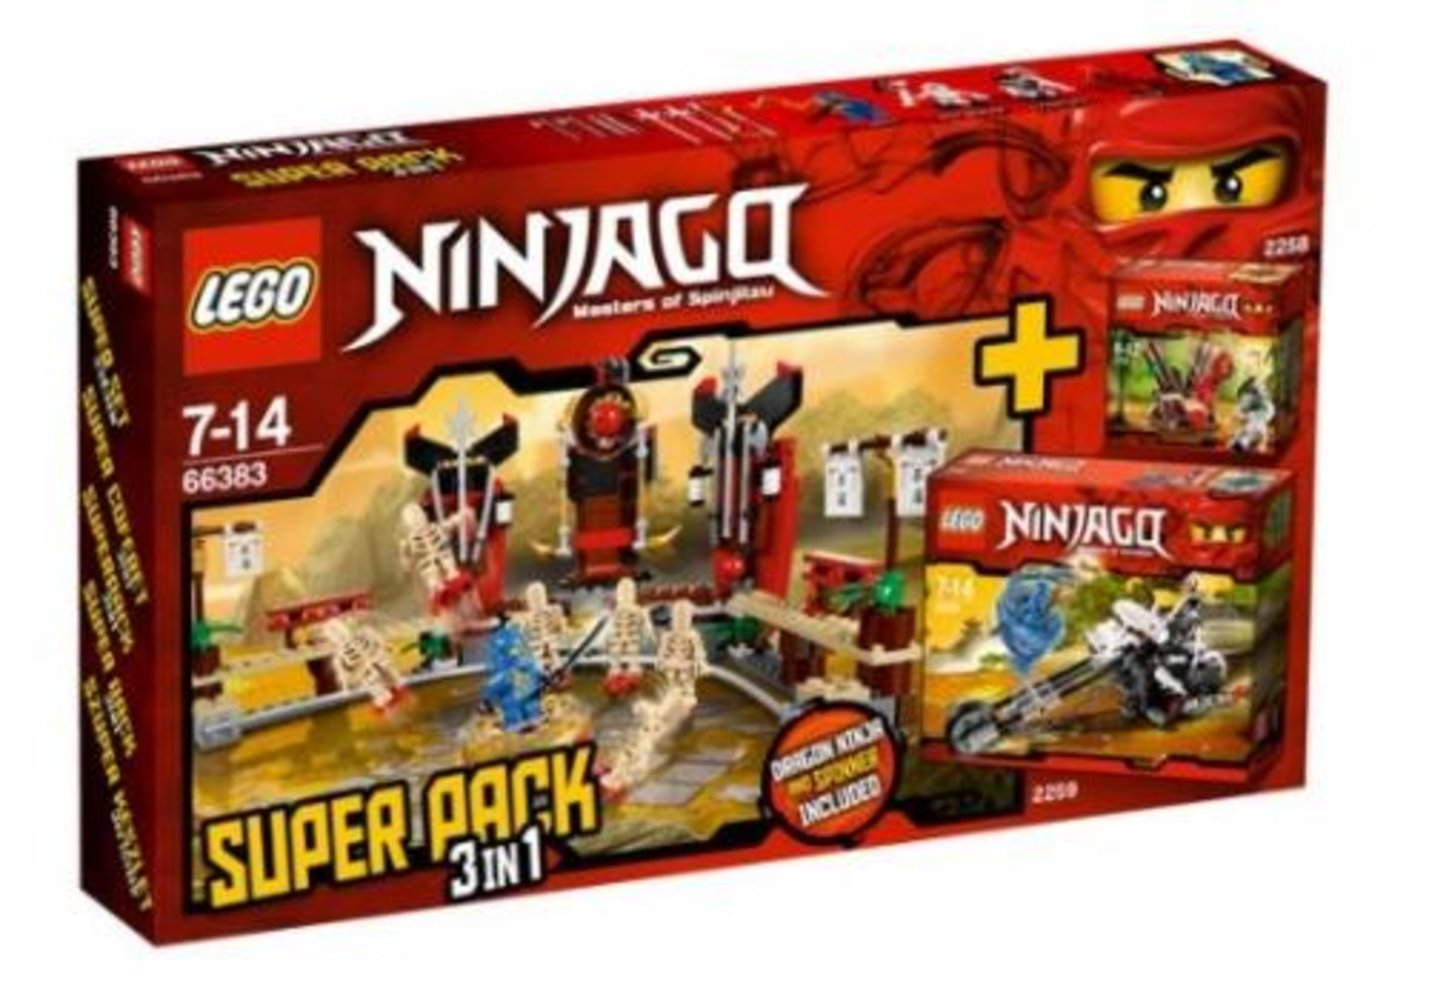 Ninjago Super Pack 3 in 1